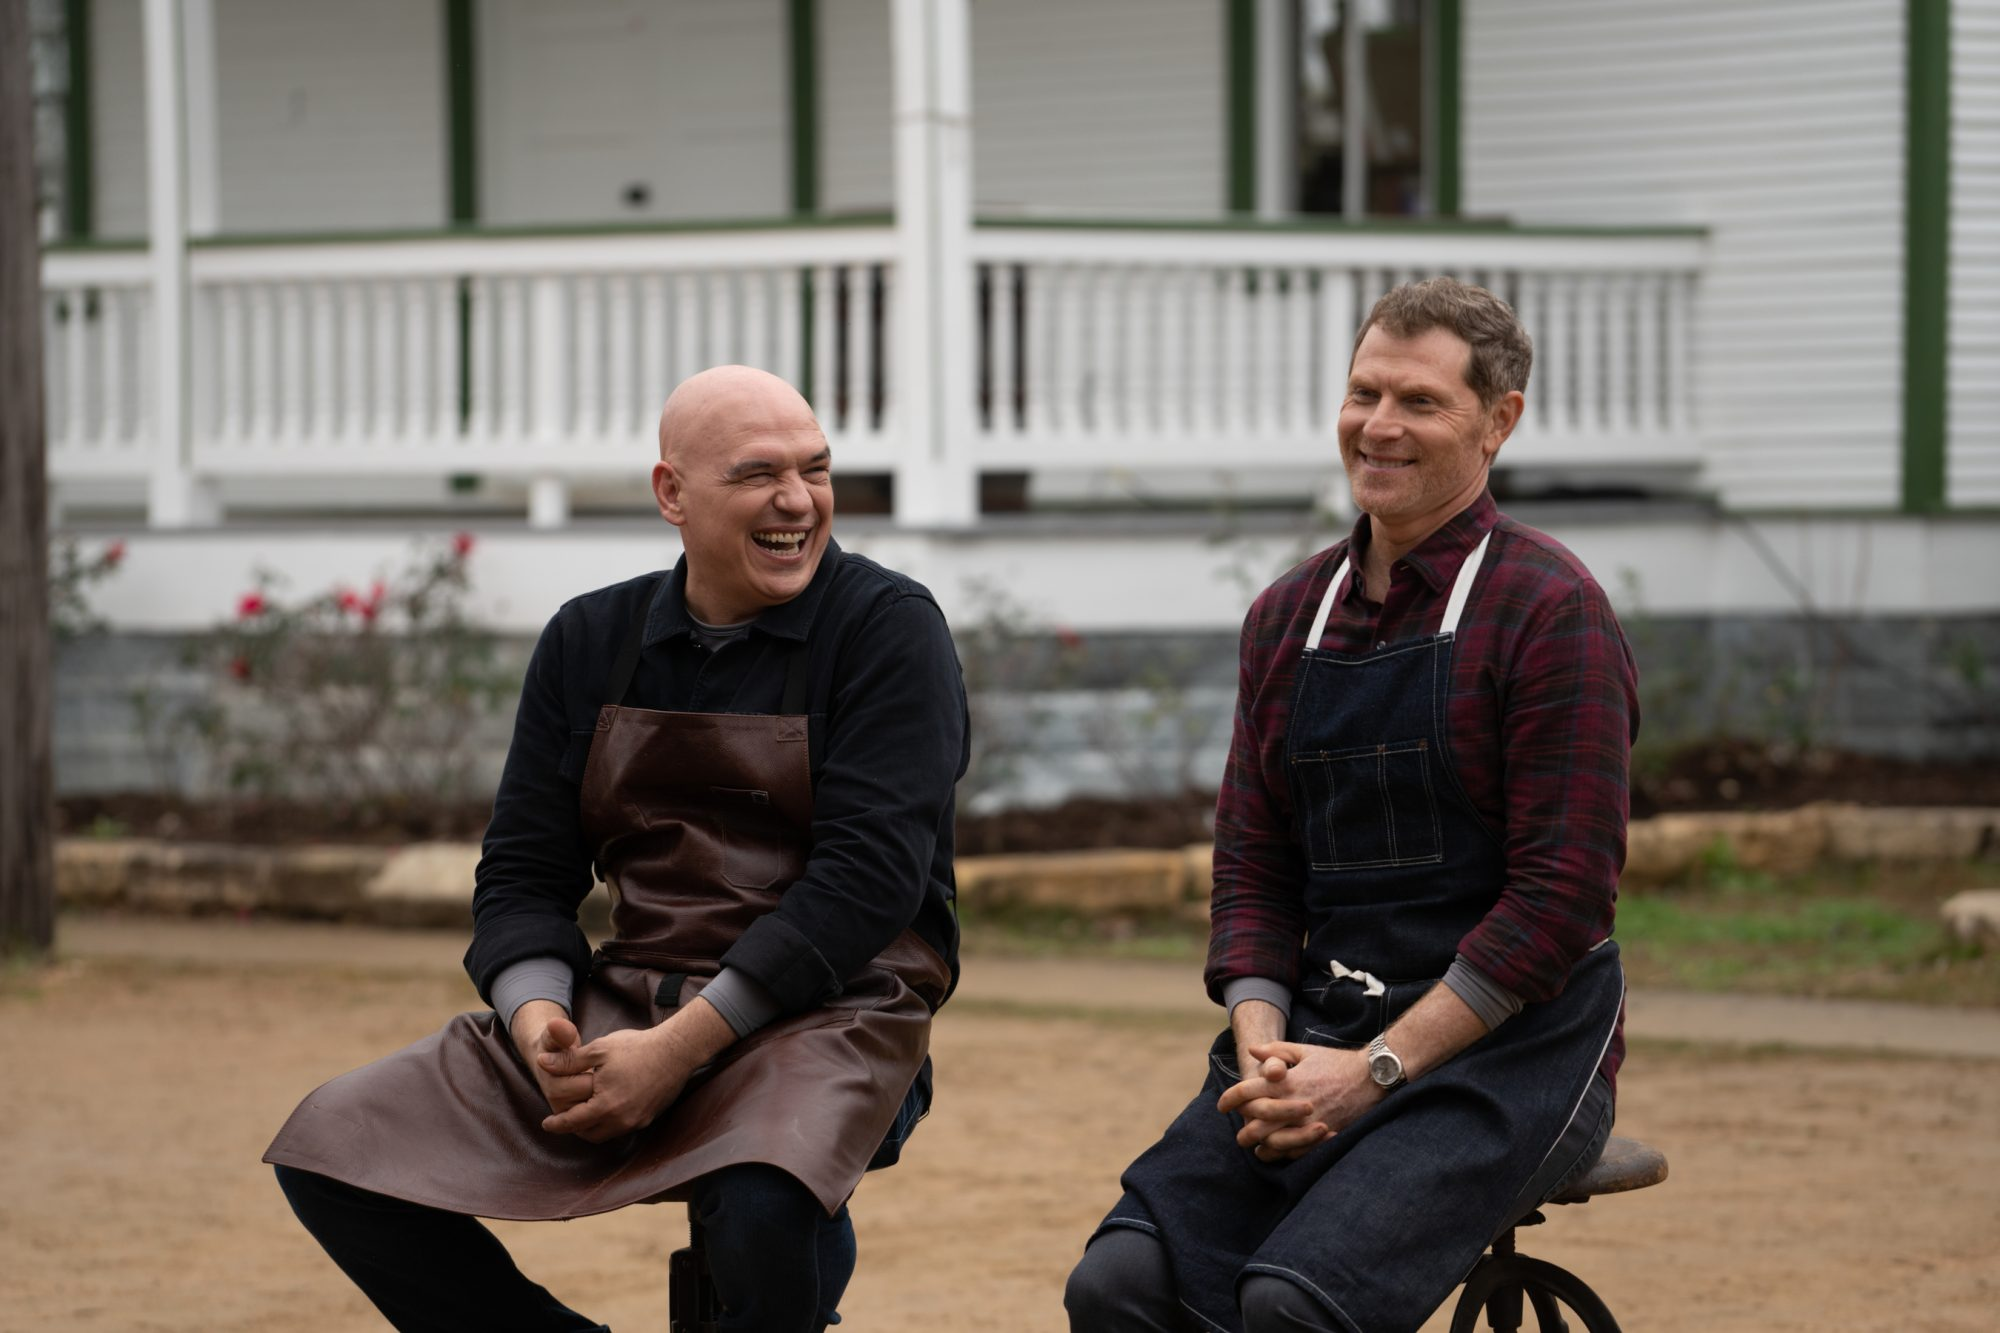 Bobby Flay and Michael Symon